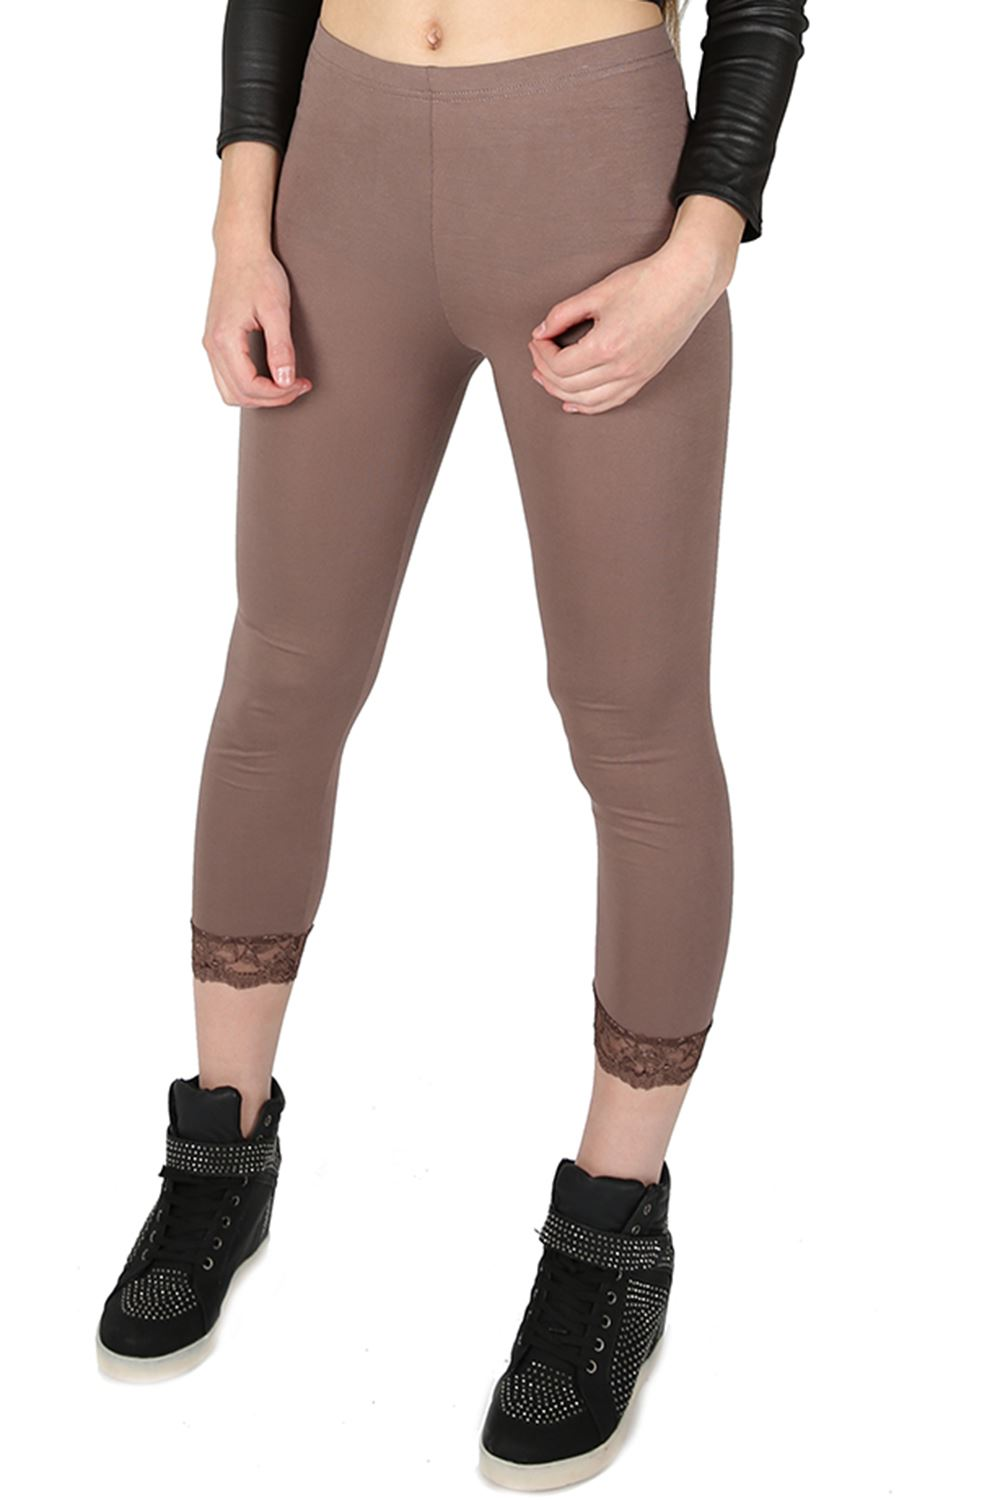 Free shipping on leggings for women at nirtsnom.tk Shop for white, black, printed, high waisted, faux leather and more in the best brands. Free shipping and returns.